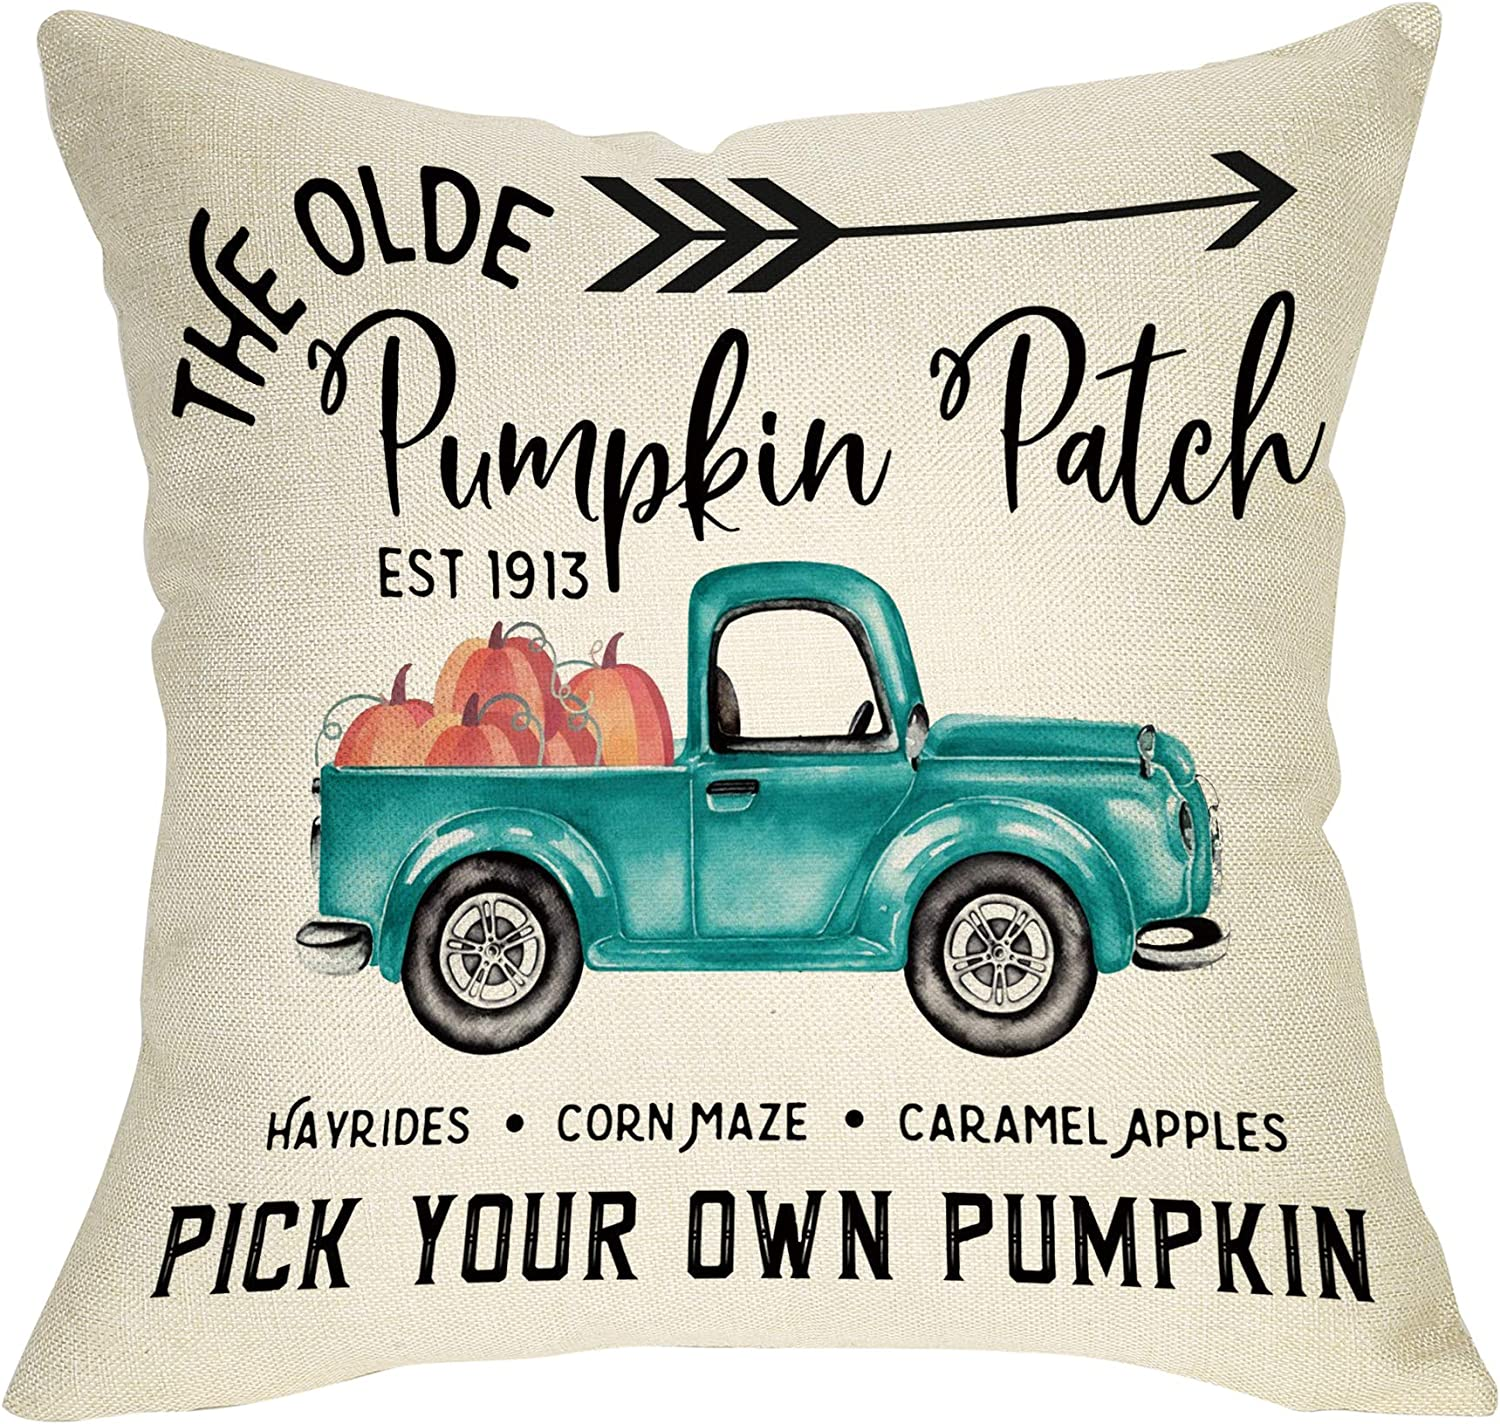 """Softxpp The Olde Pumpkin Patch Decoration Fall Farmhouse Throw Pillow Cover Vintage Truck Sign Thanksgiving Day Autumn Harvest Home Decor Cushion Case Decorative for Sofa Couch 18"""" x 18"""" Cotton Linen"""